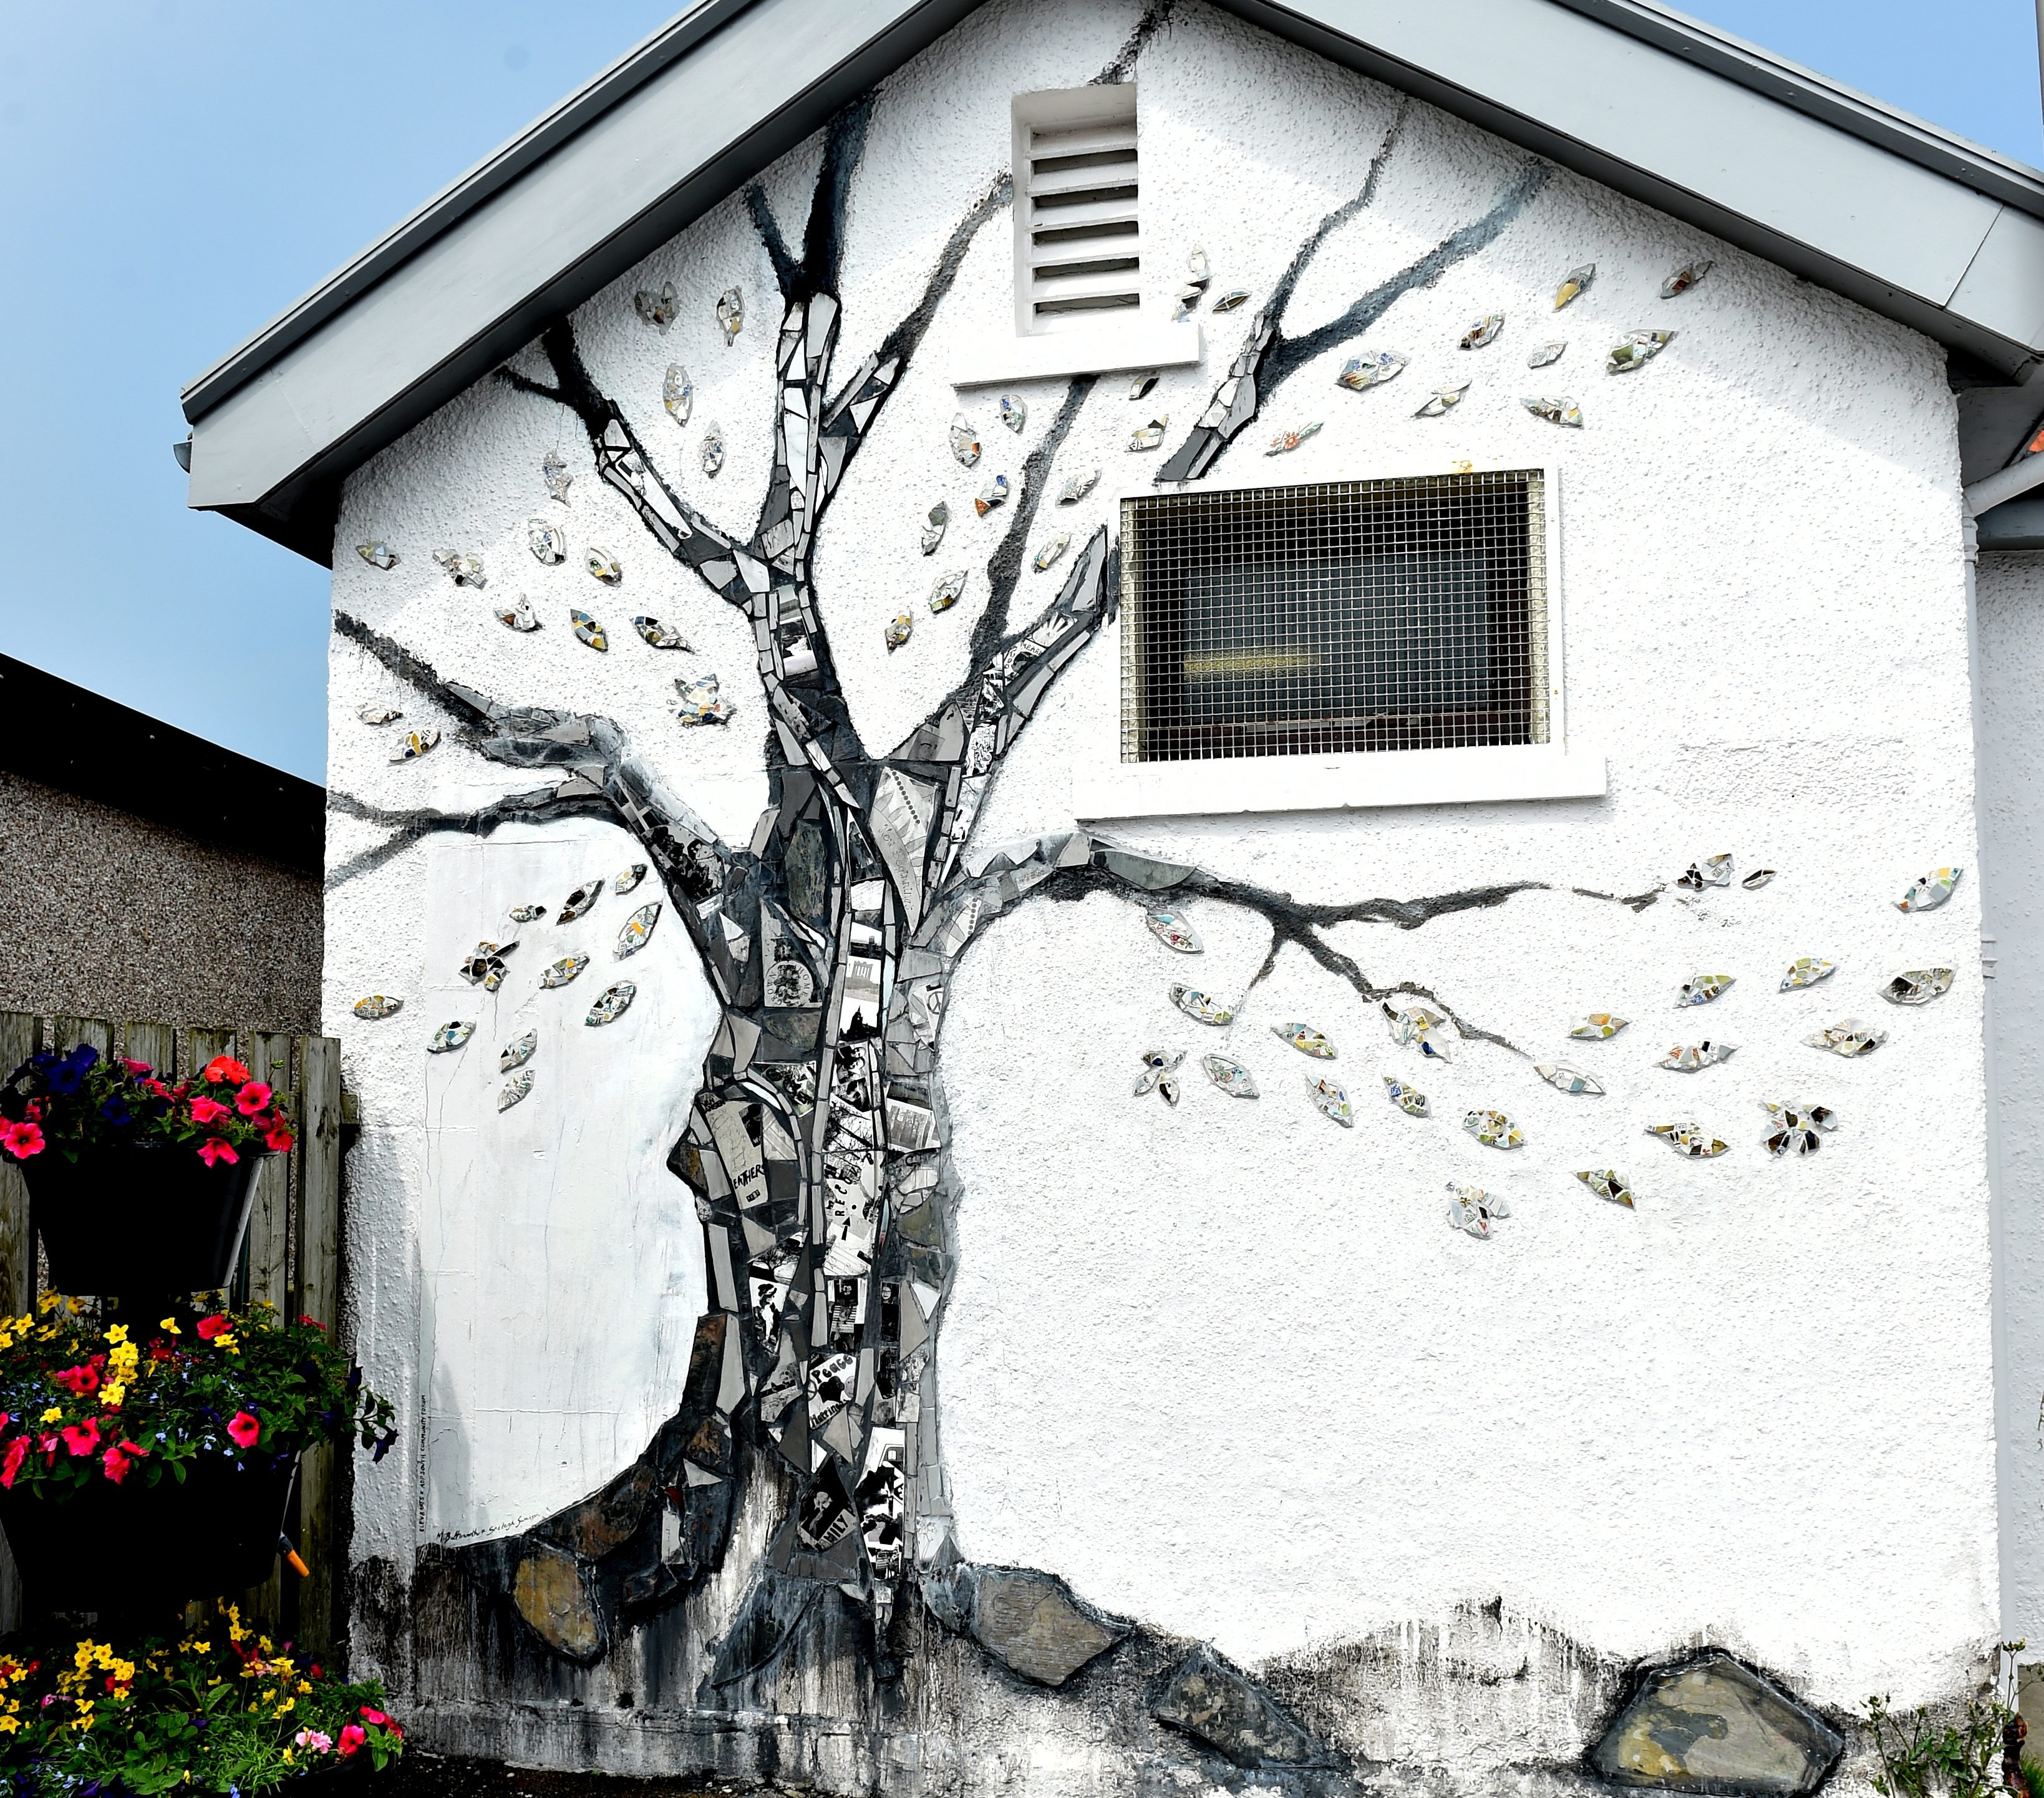 The mural in Stonehaven